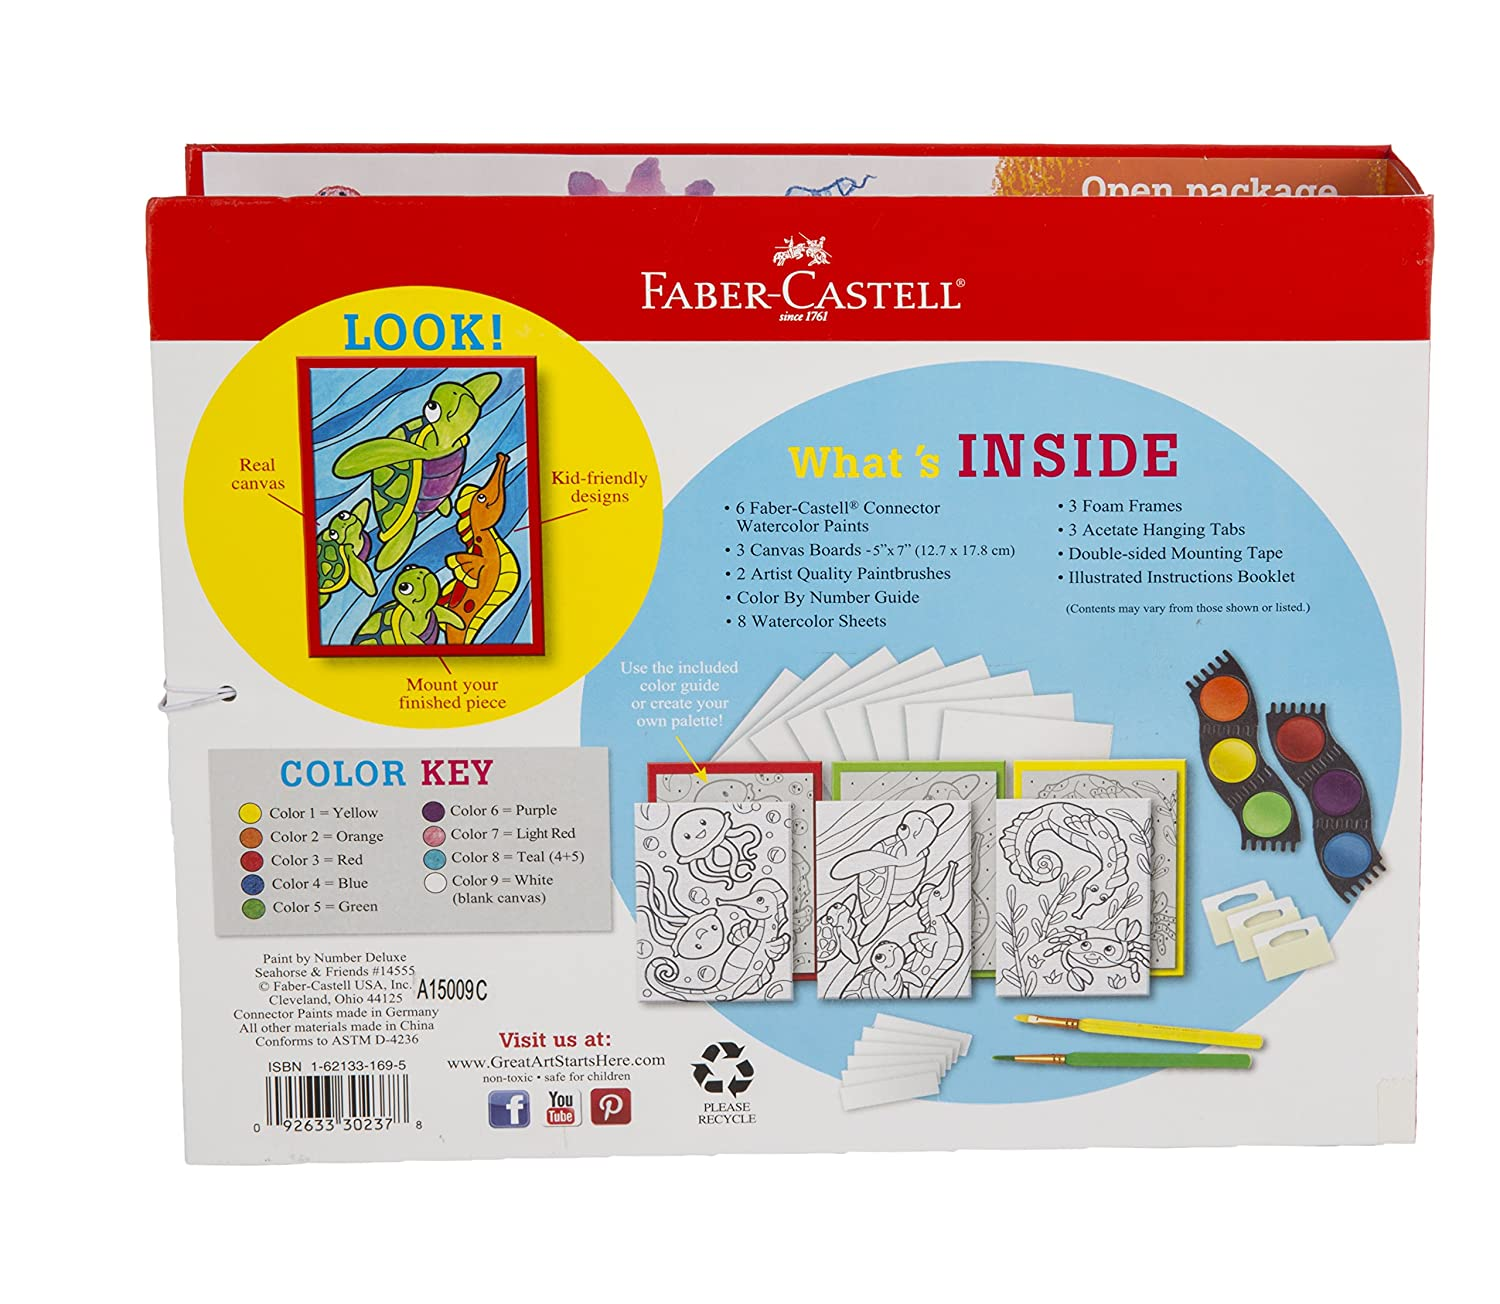 Amazon.com: Faber-Castel Paint by Number Deluxe Sea Horse Kit: Arts ...